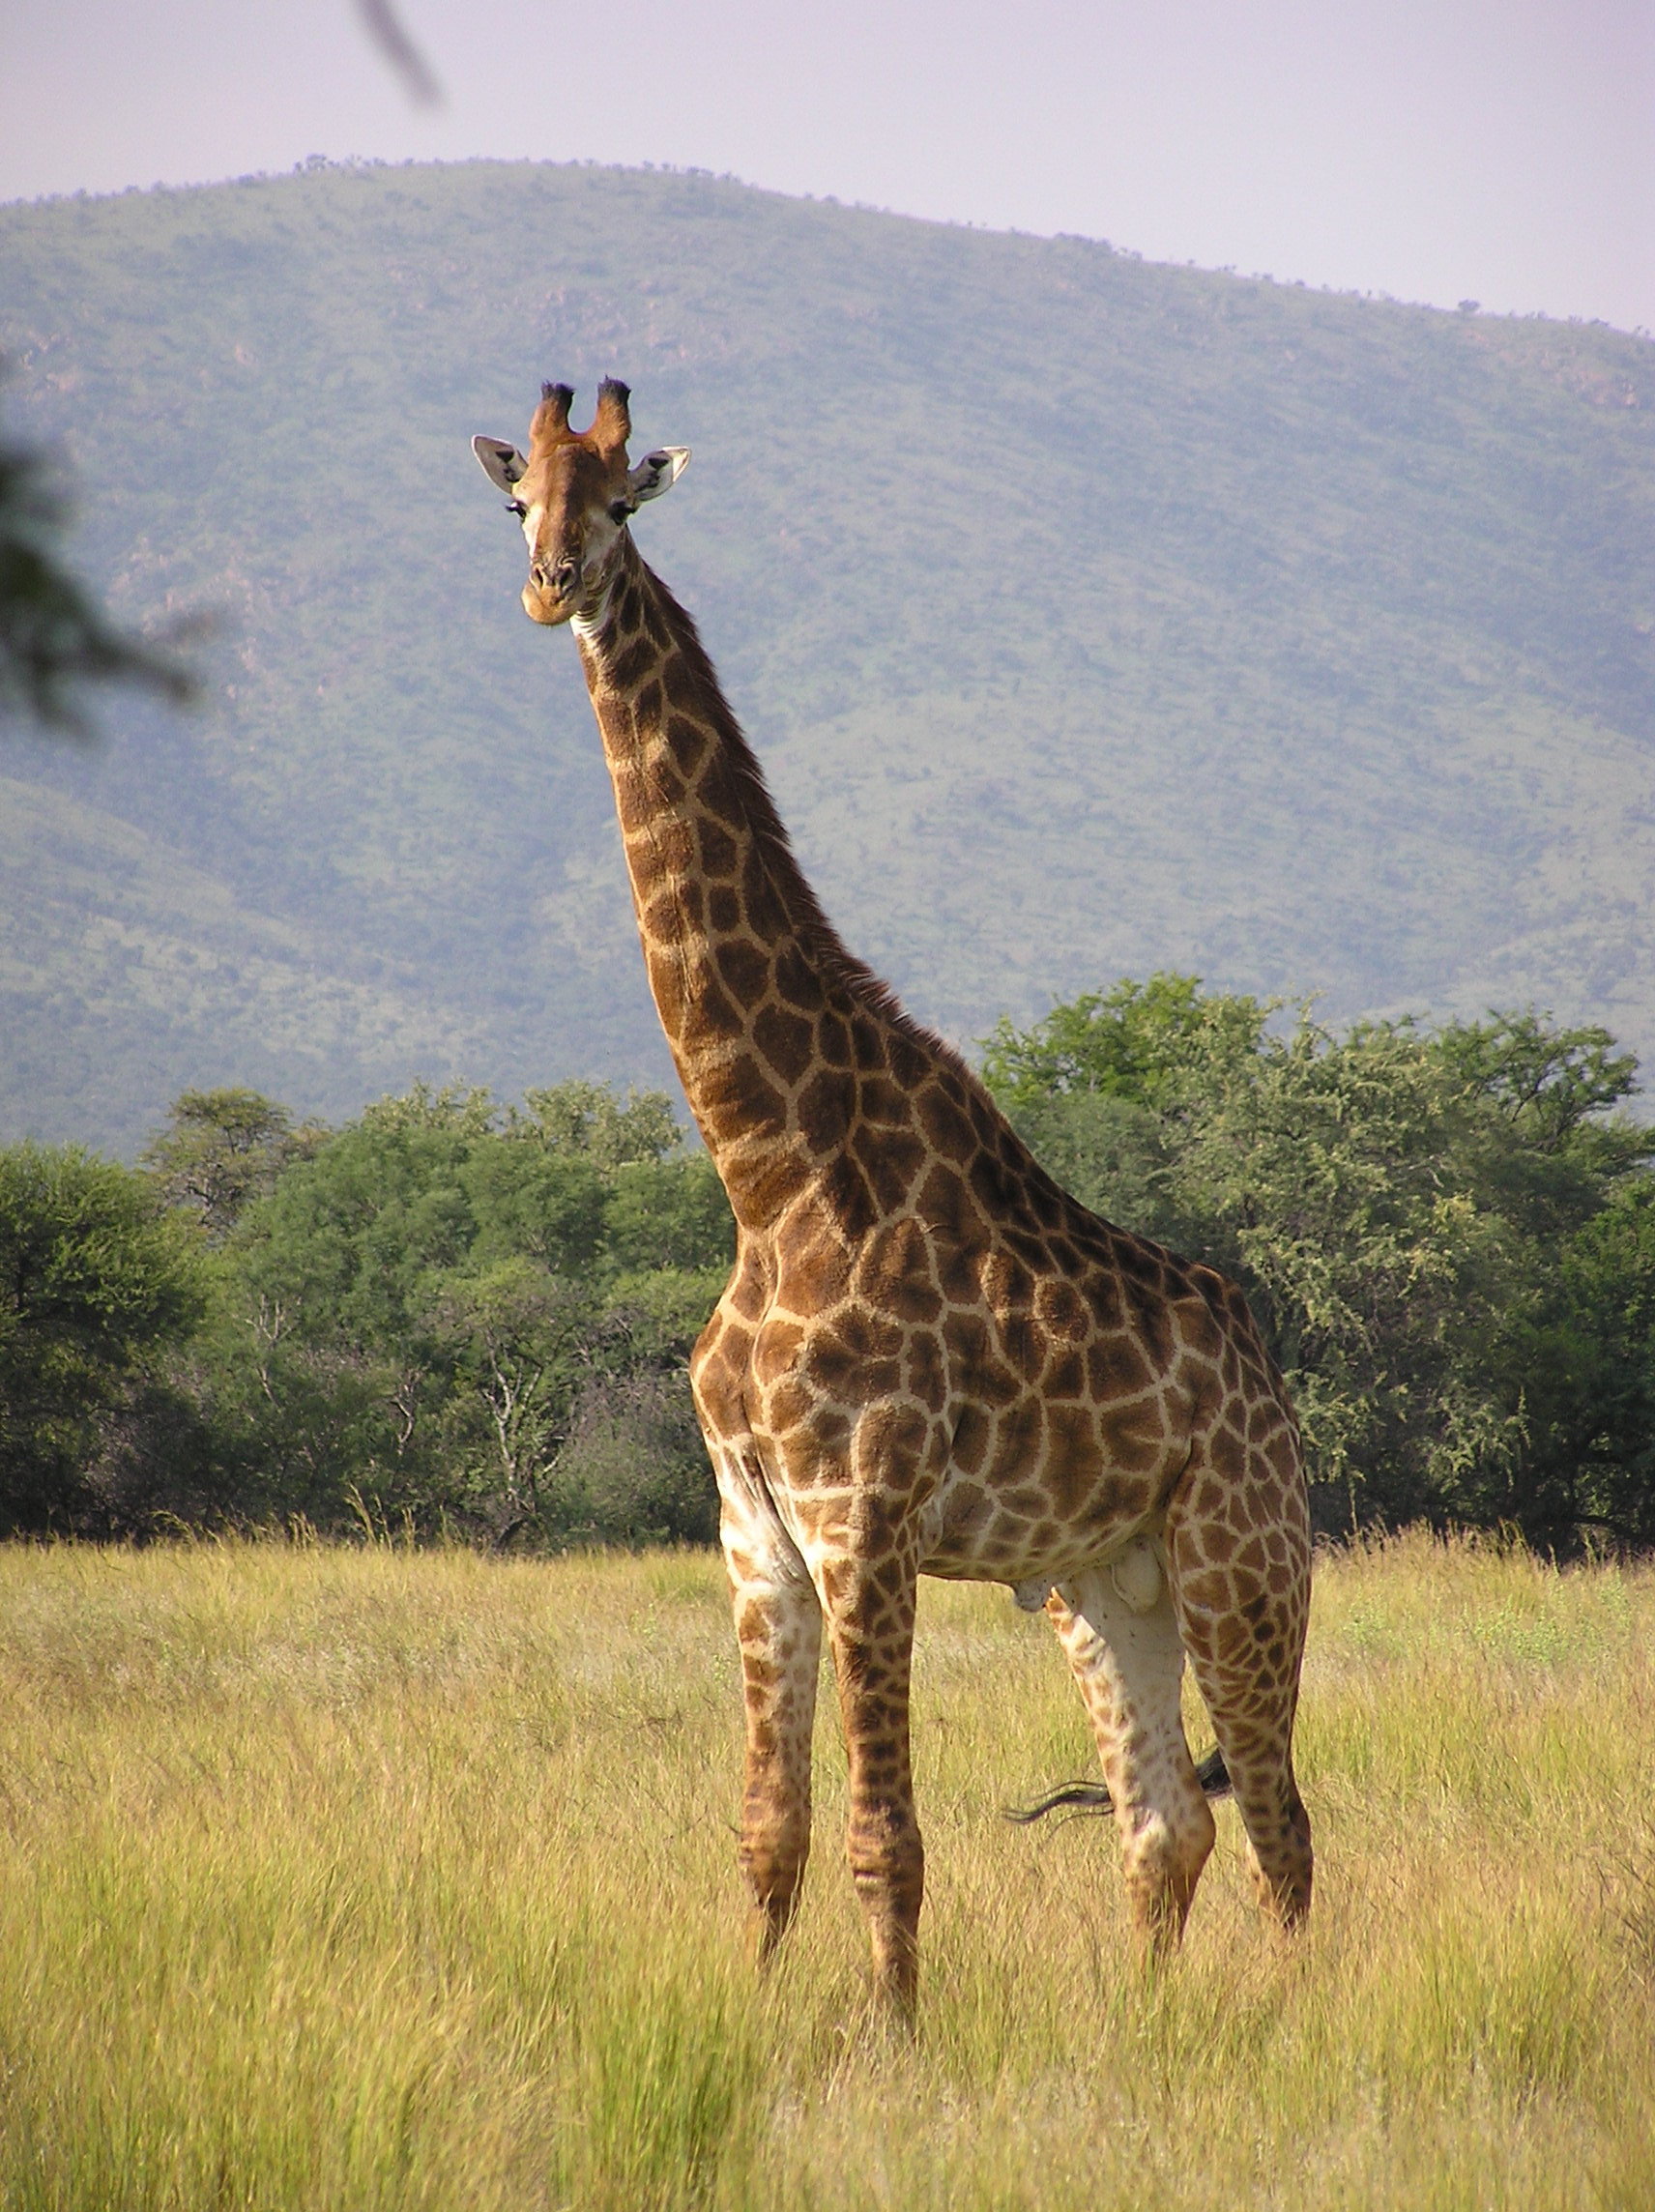 I am willing to bet that Giraffe's have a really hard time not stabilizing with their necks